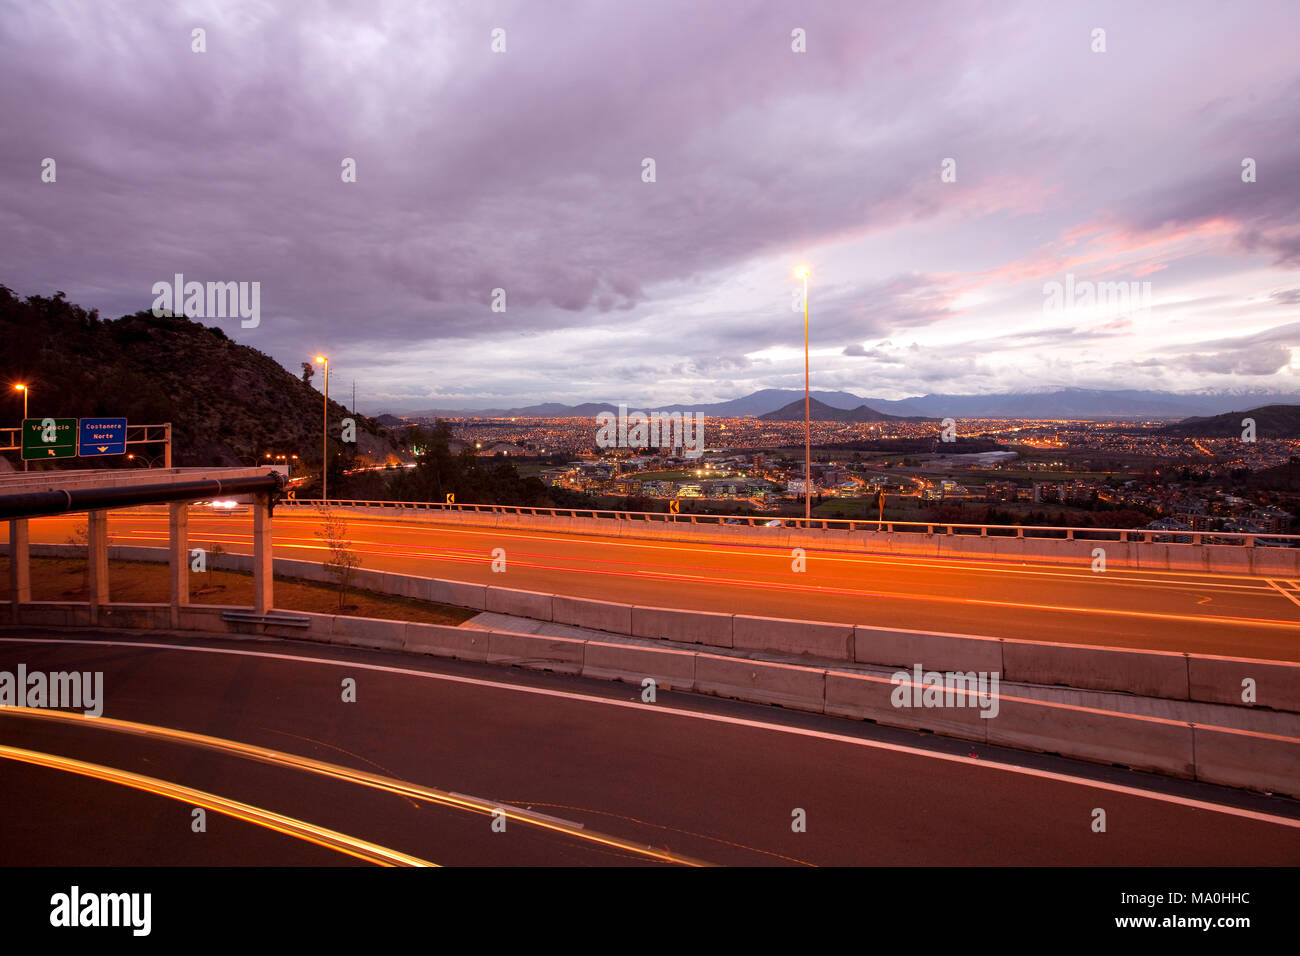 Freeway and panoramic view of western side of the city, Vitacura, Santiago, Chile - Stock Image